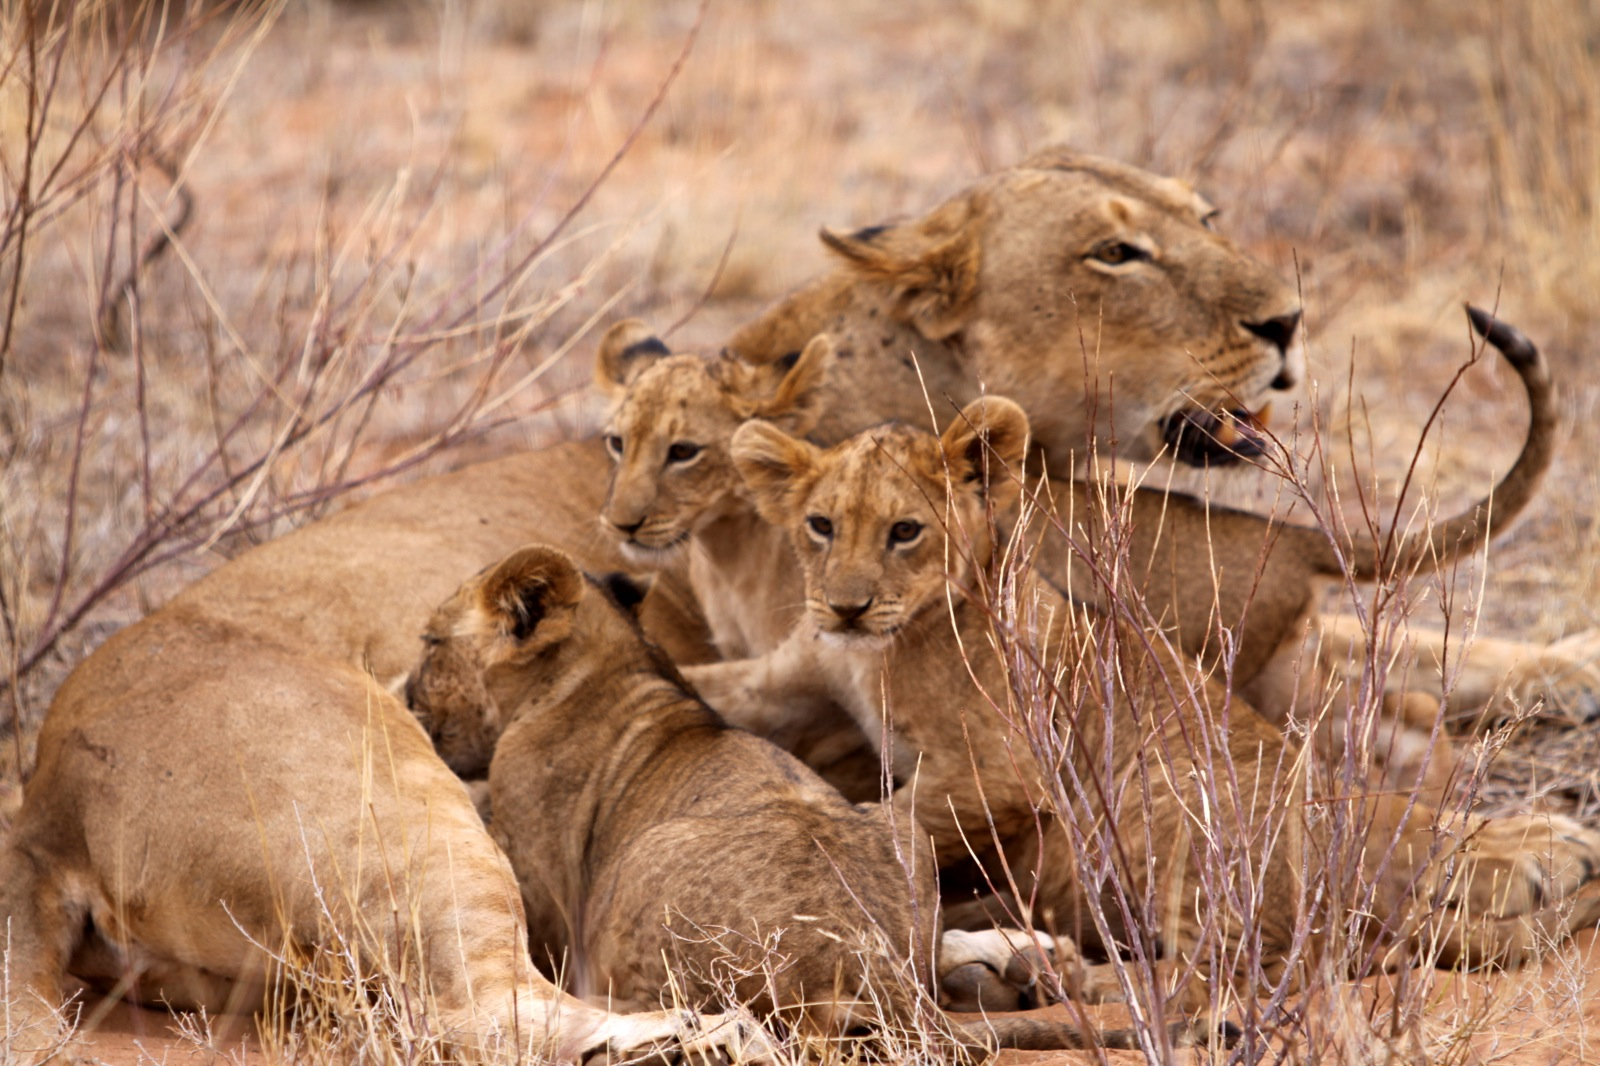 A lioness and her three, small lion cubs during feeding time in Kenya.